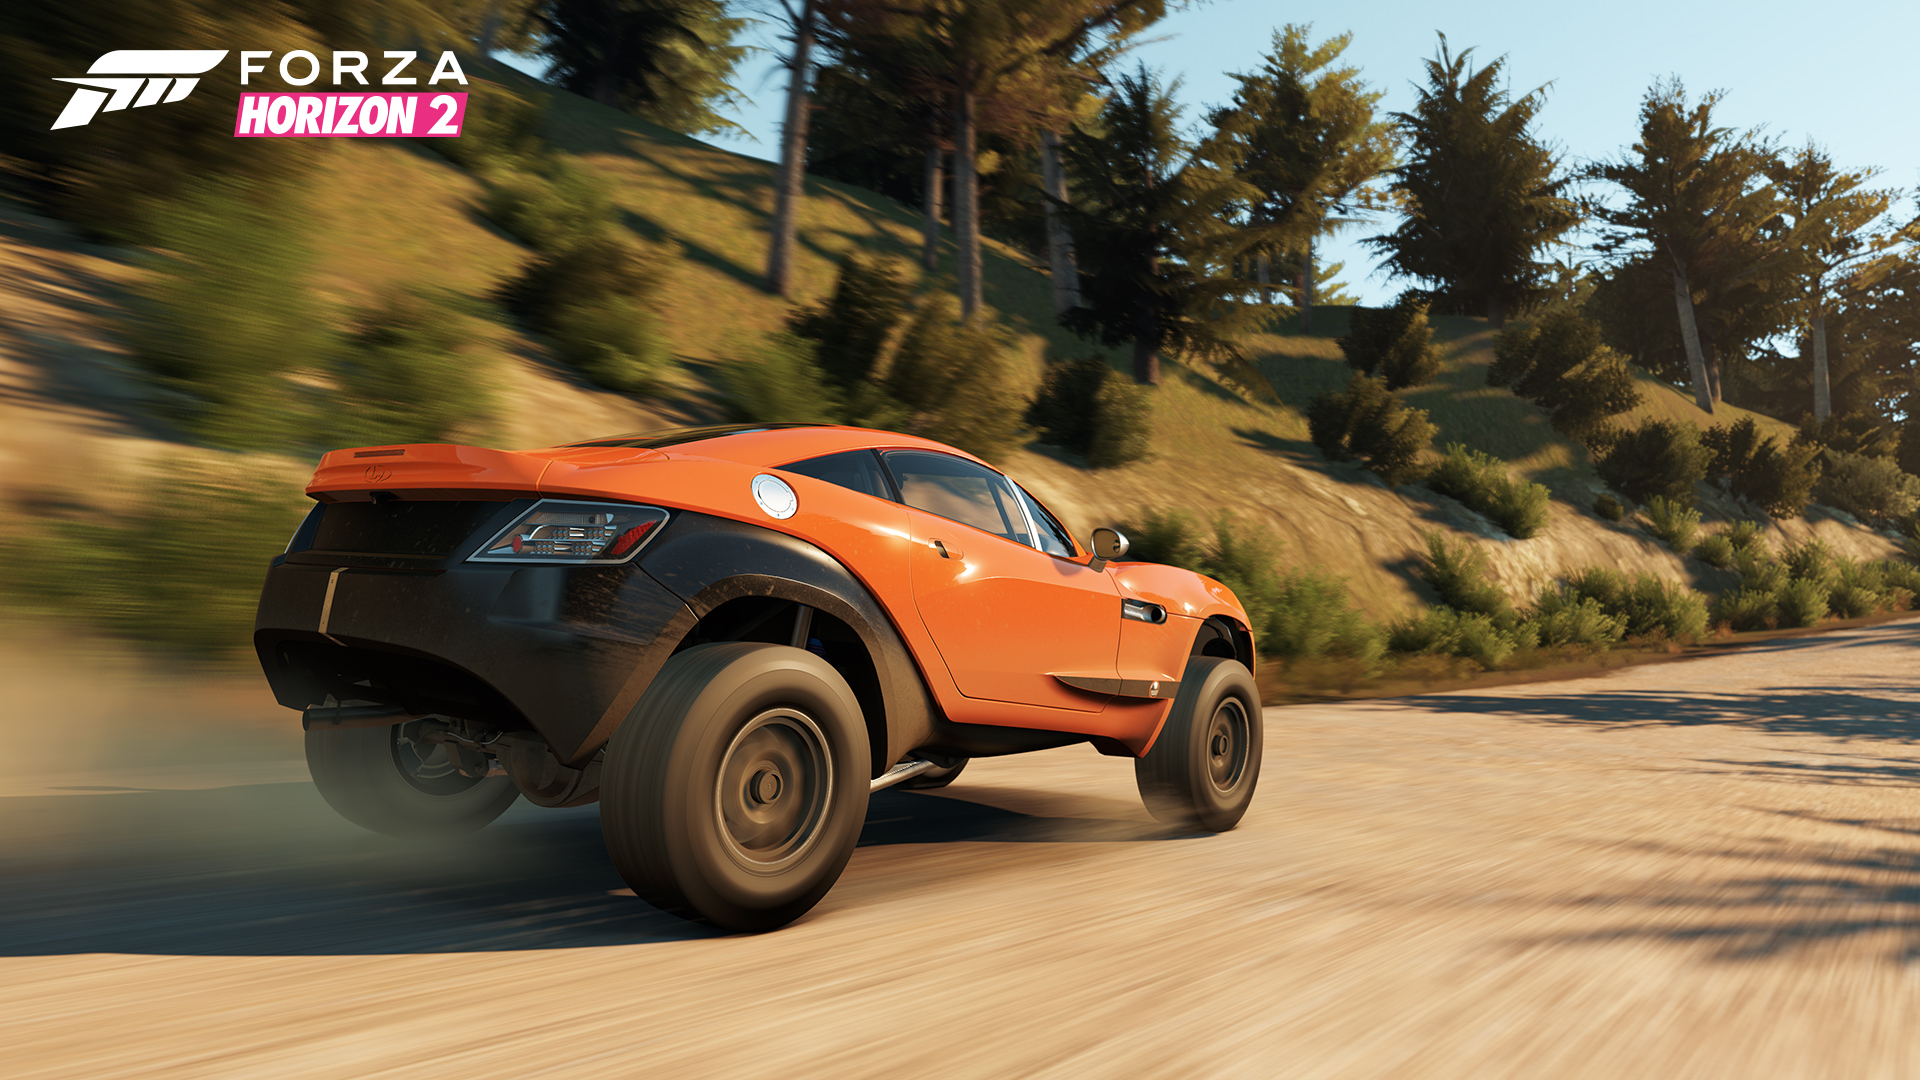 Start your Forza Horizon 2 career with new cars thanks to